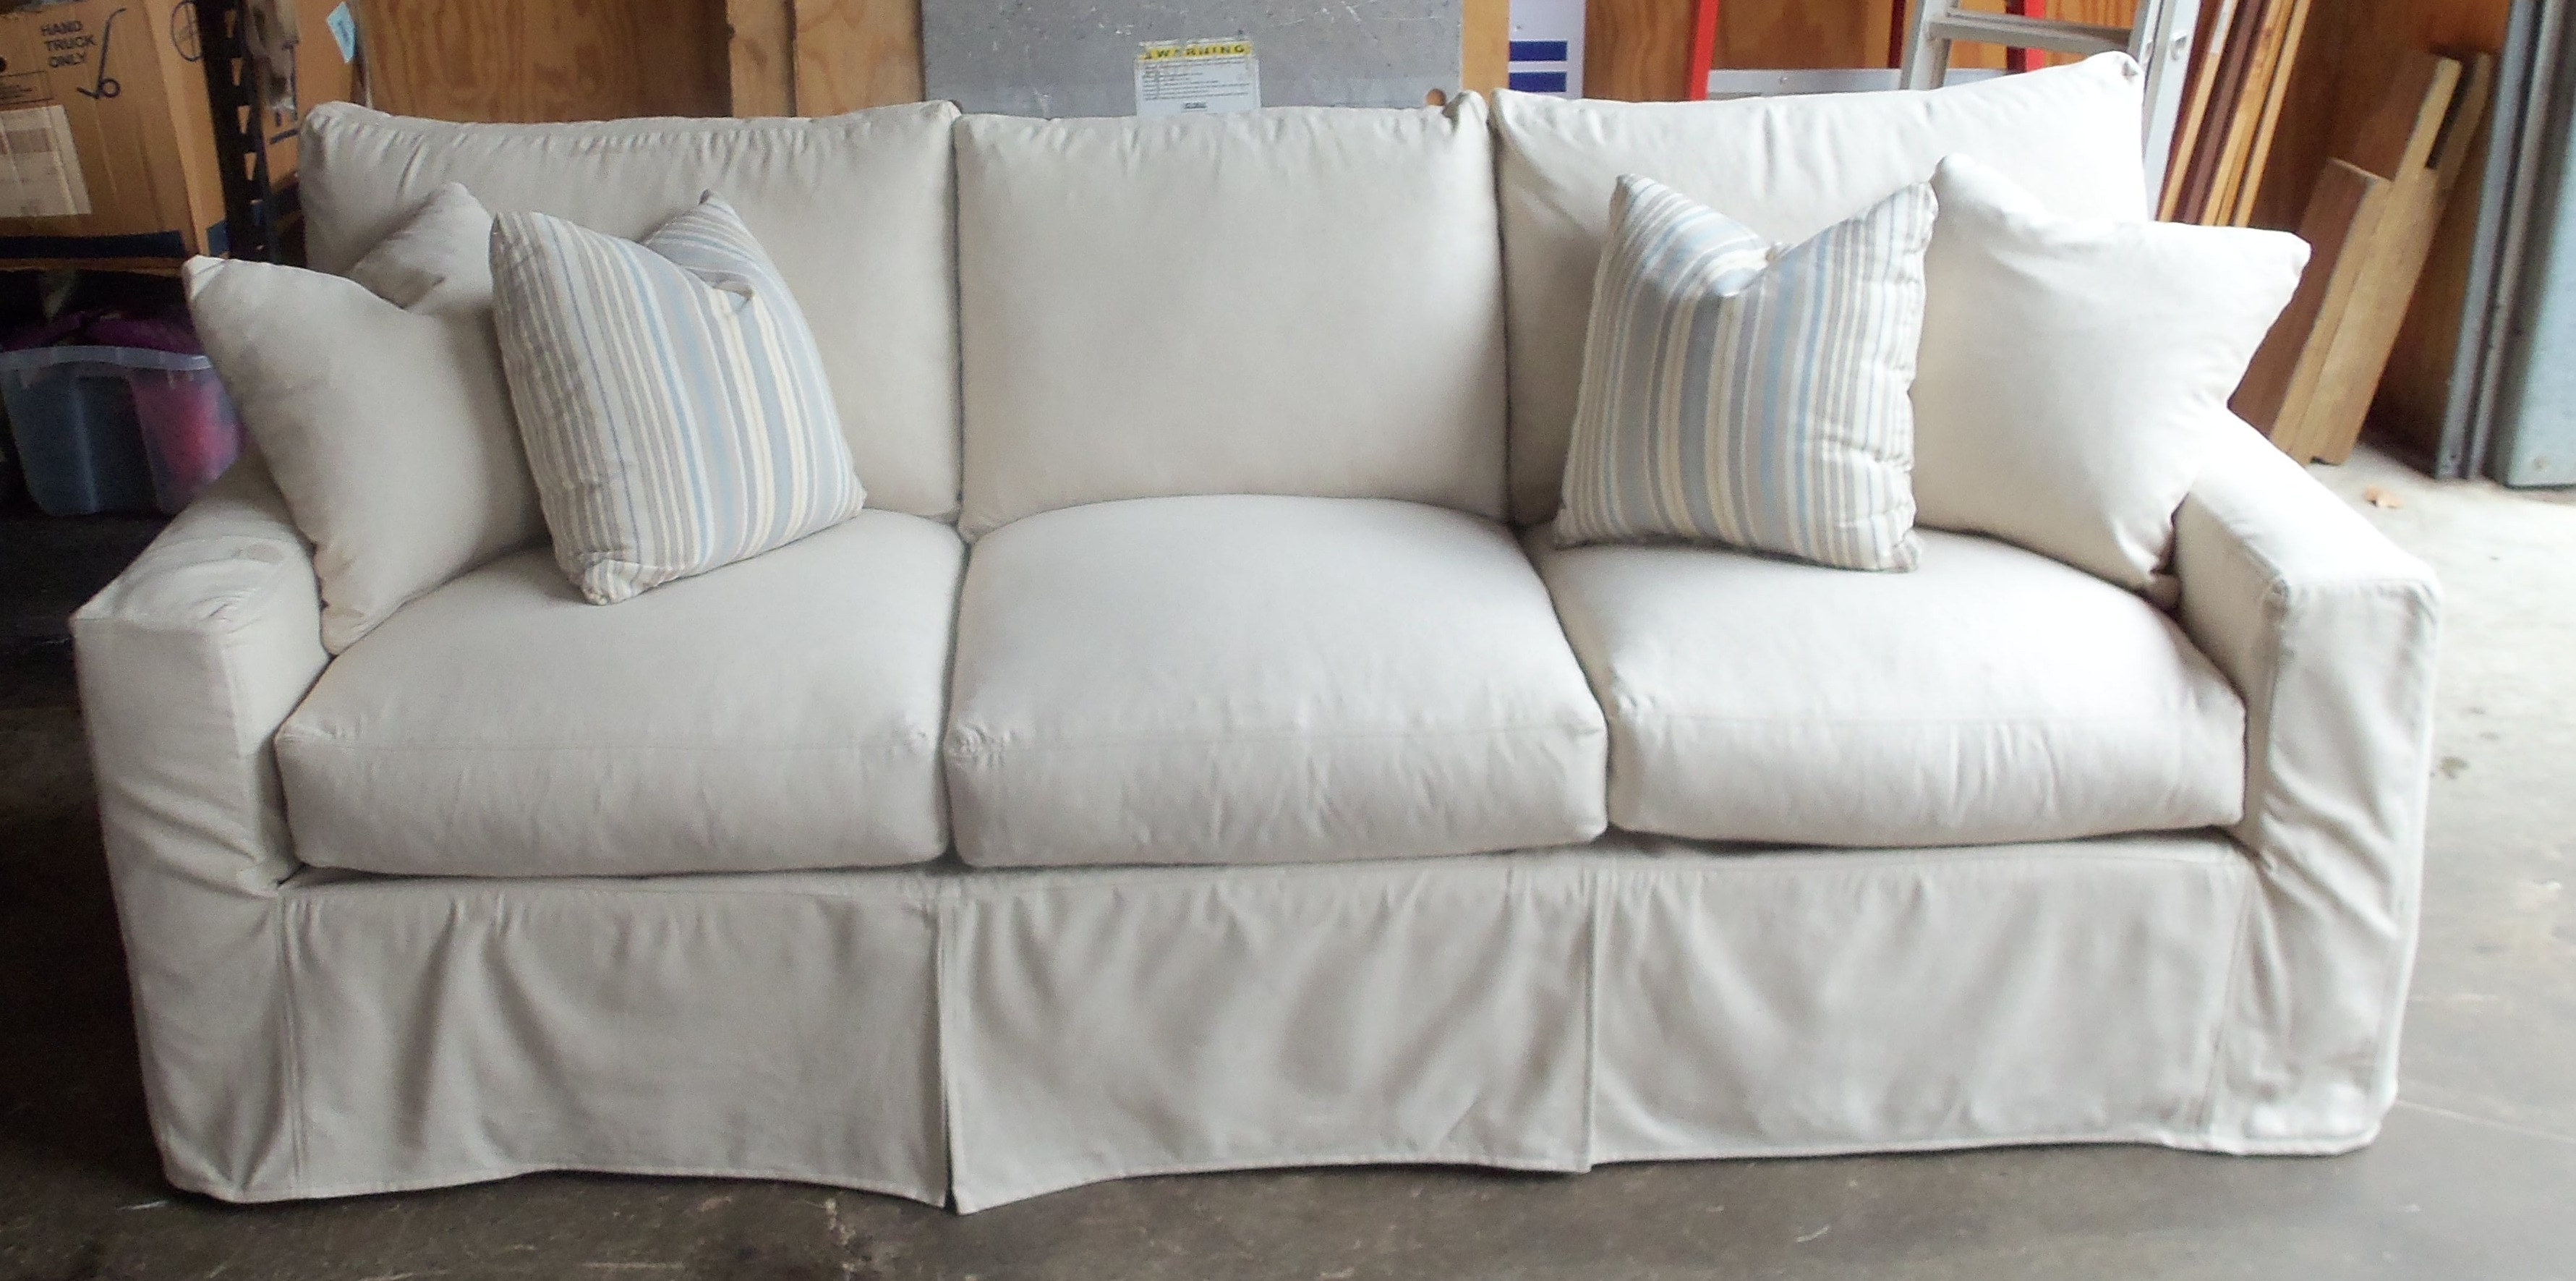 Sofas Center Stupendous White Slipcovers For Sofa Photo With Slipcovers For Sofas And Chairs (Image 14 of 15)